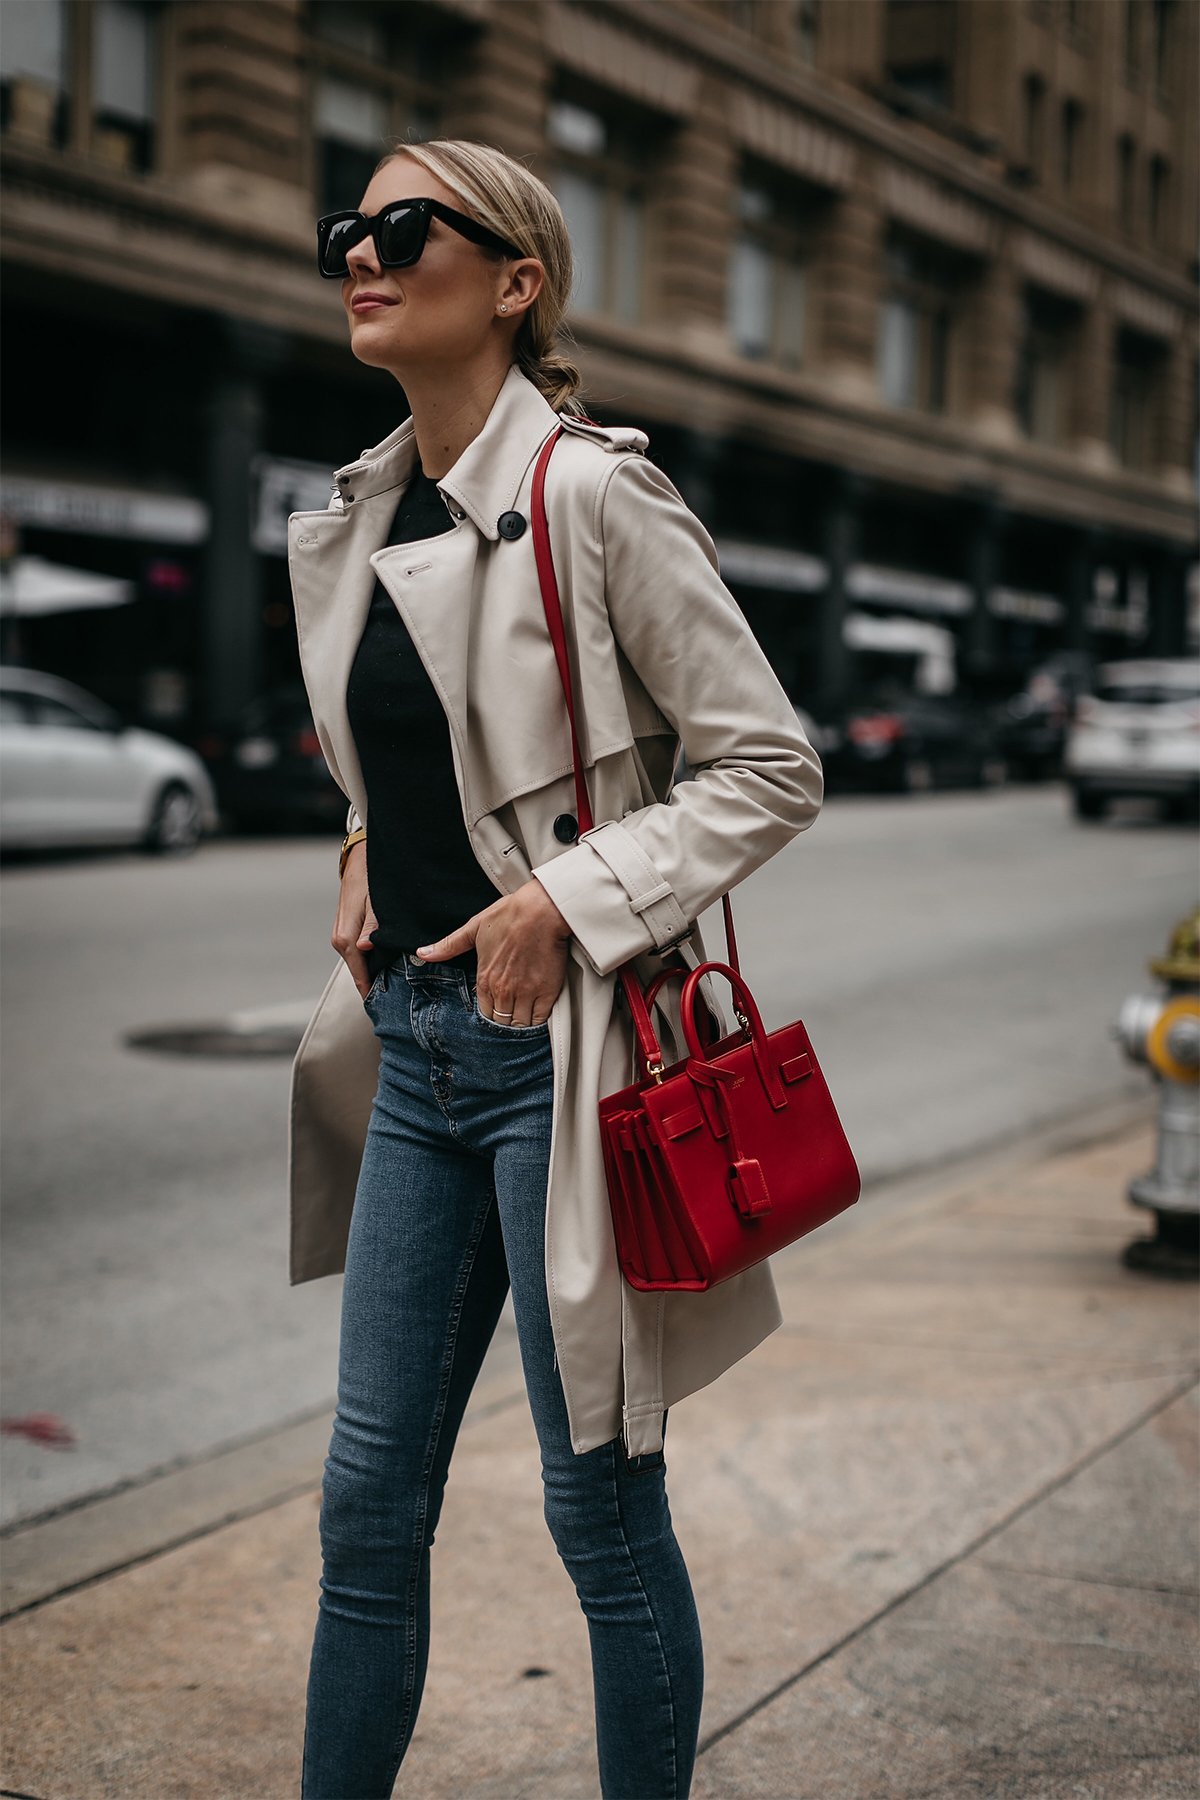 Fashion Jackson Club Monaco Trench Coat Black Sweater Denim Skinny Jeans Saint Laurent Sac De Jour Red Handbag